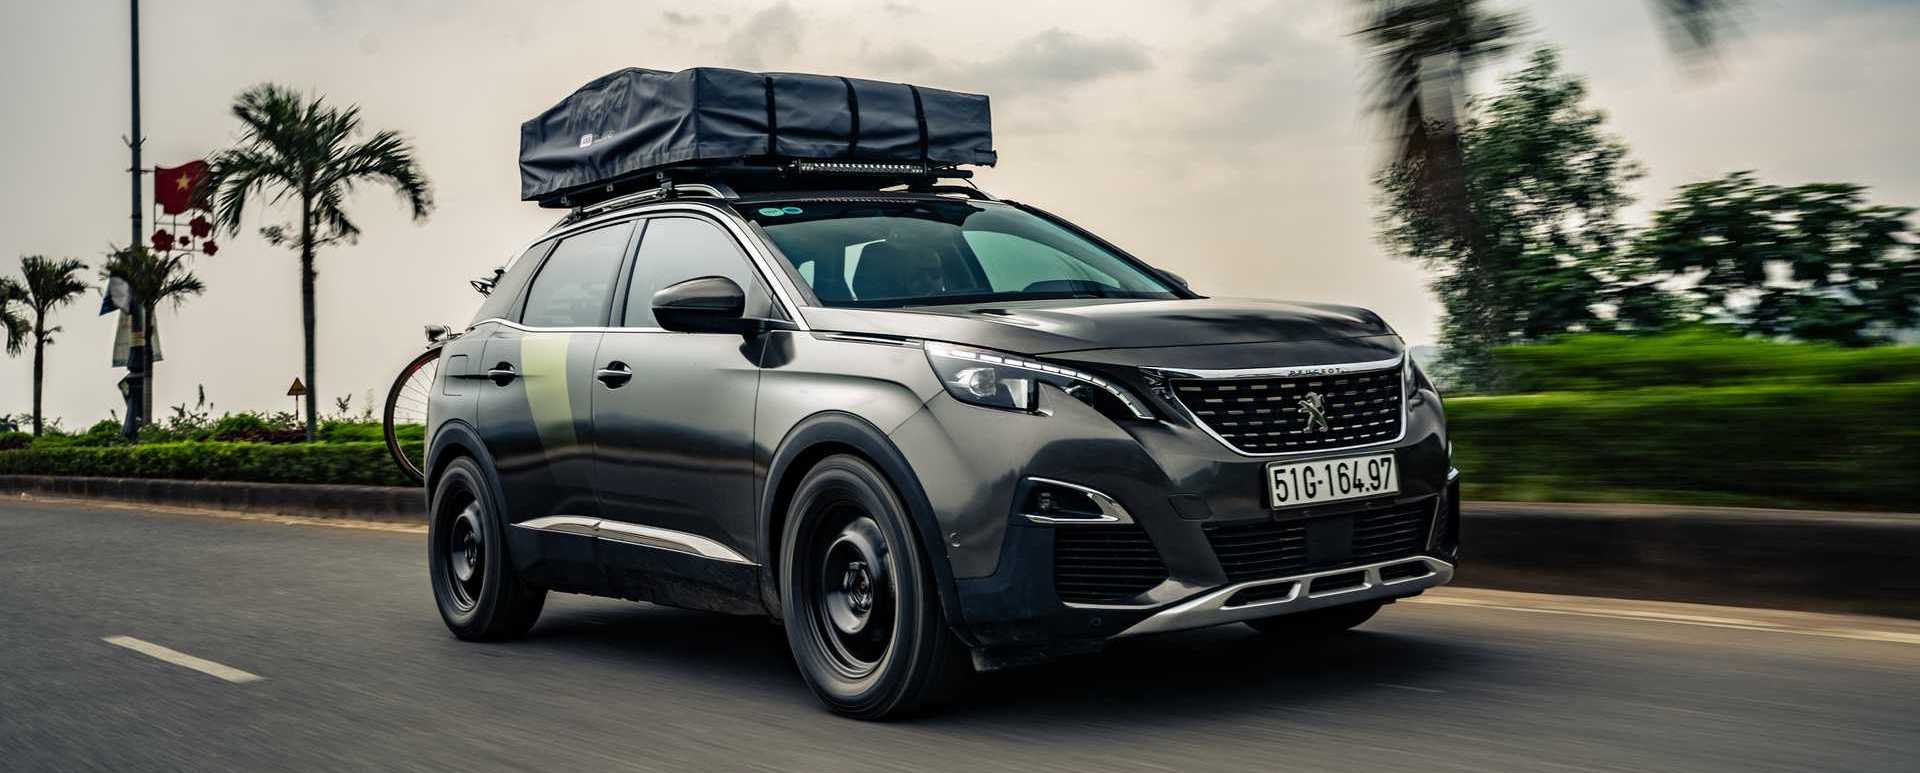 Peugeot 3008 Concept Wants To Be An Adventurous SUV